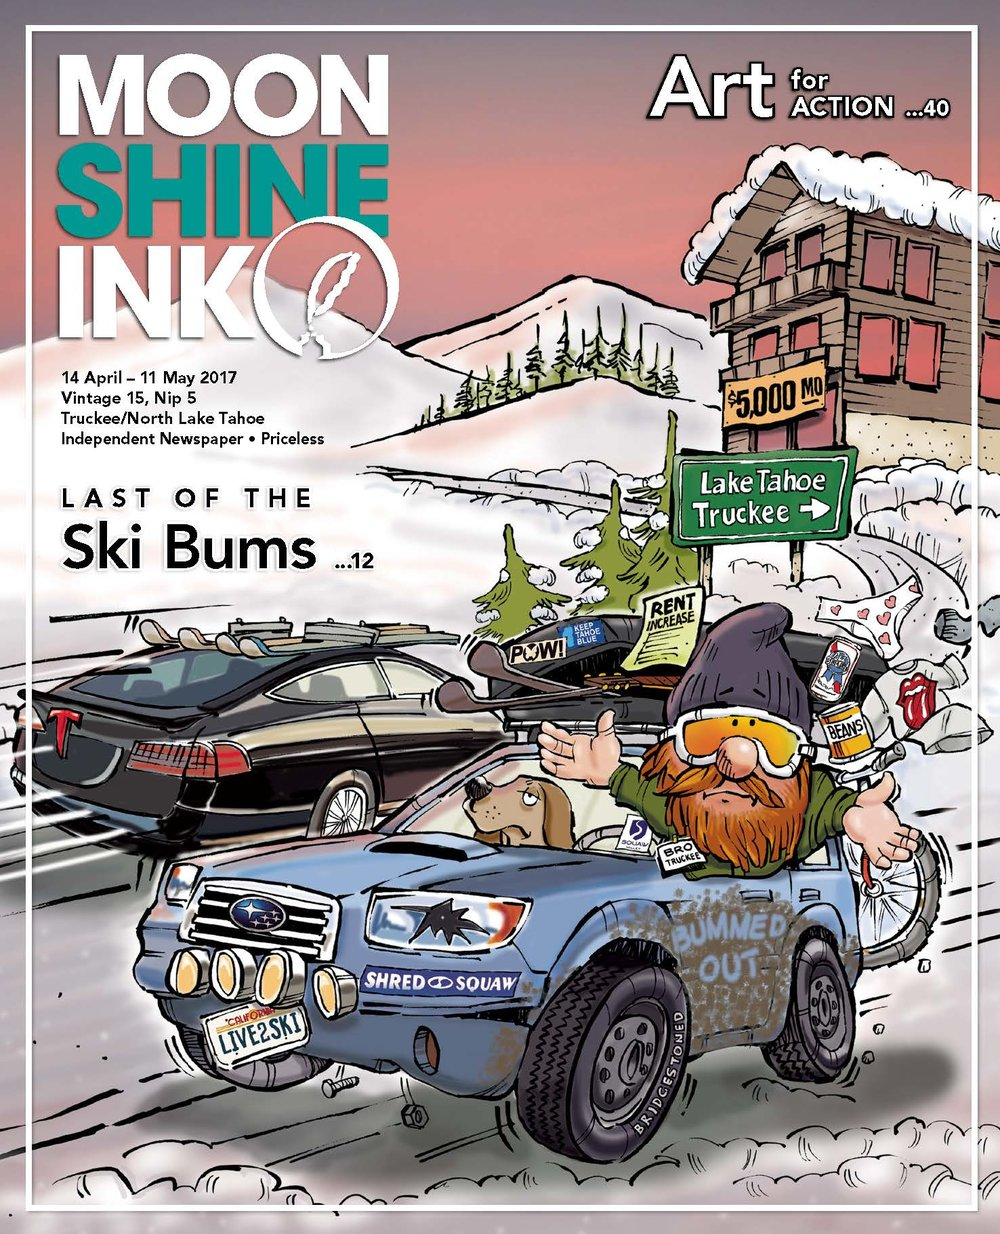 Moonshine Ink - April 14-May 11 2017 Issue